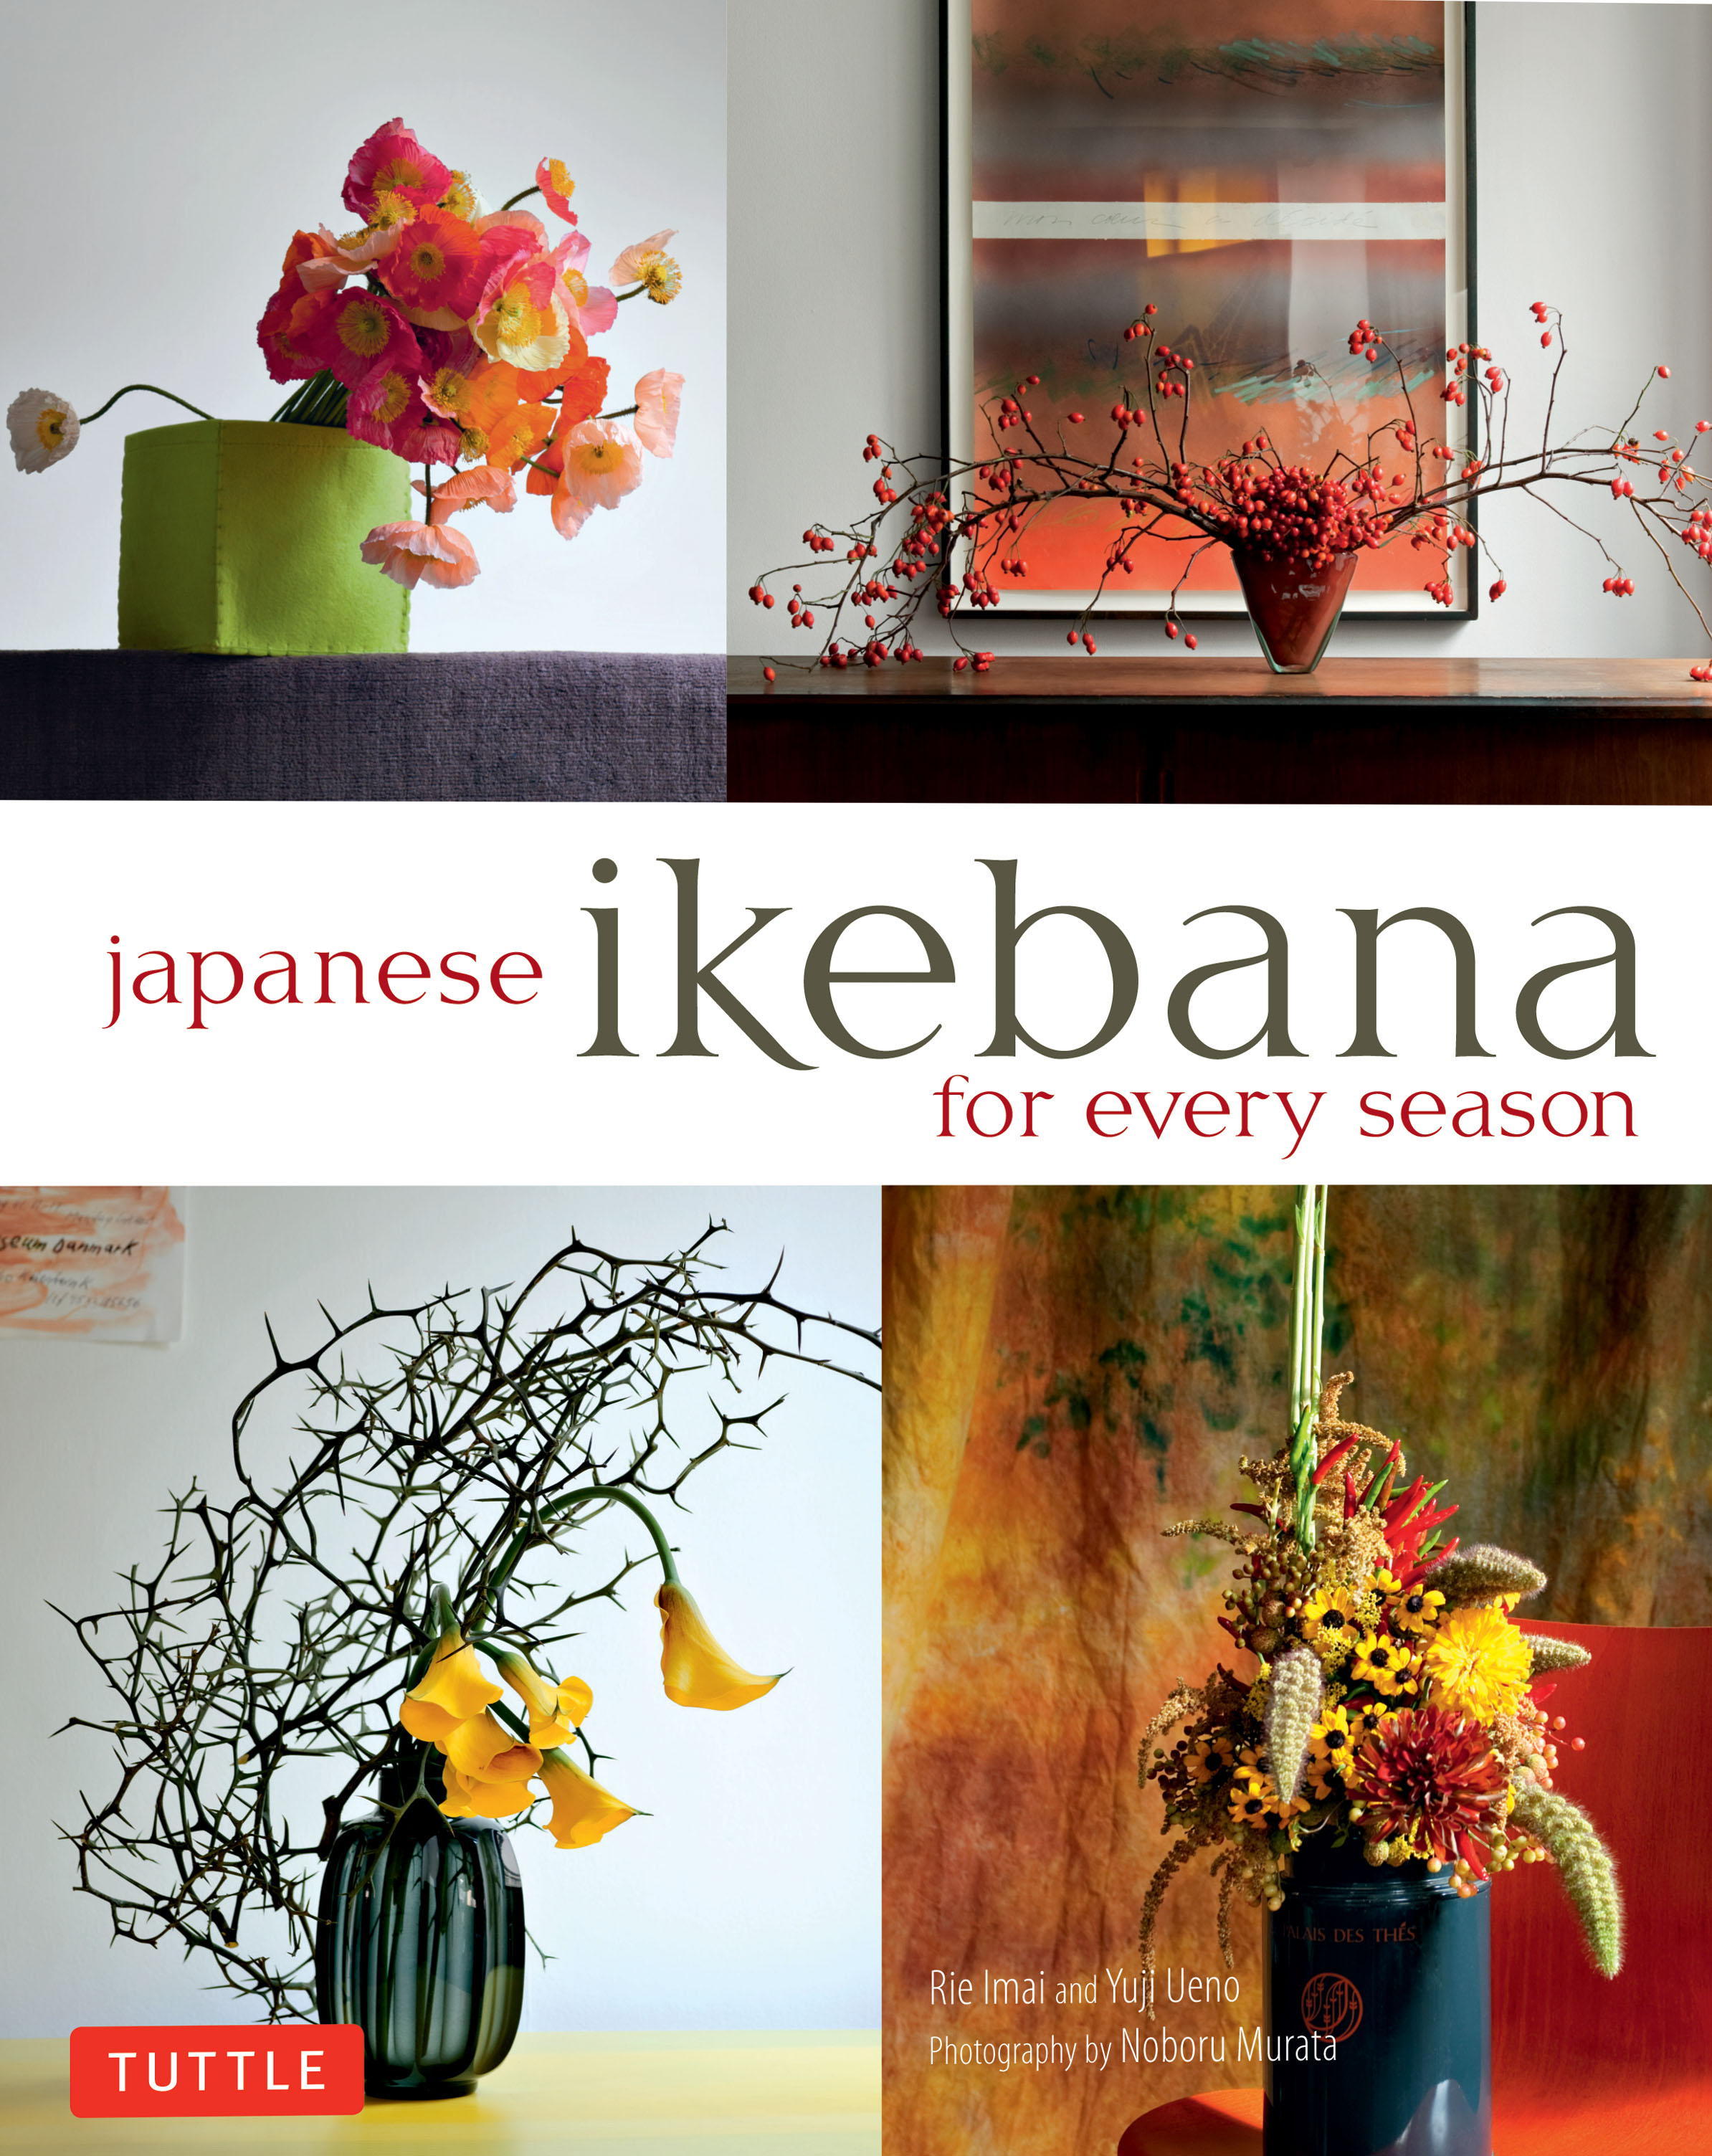 Japanese-ikebana-for-every-season-9784805312124_hr